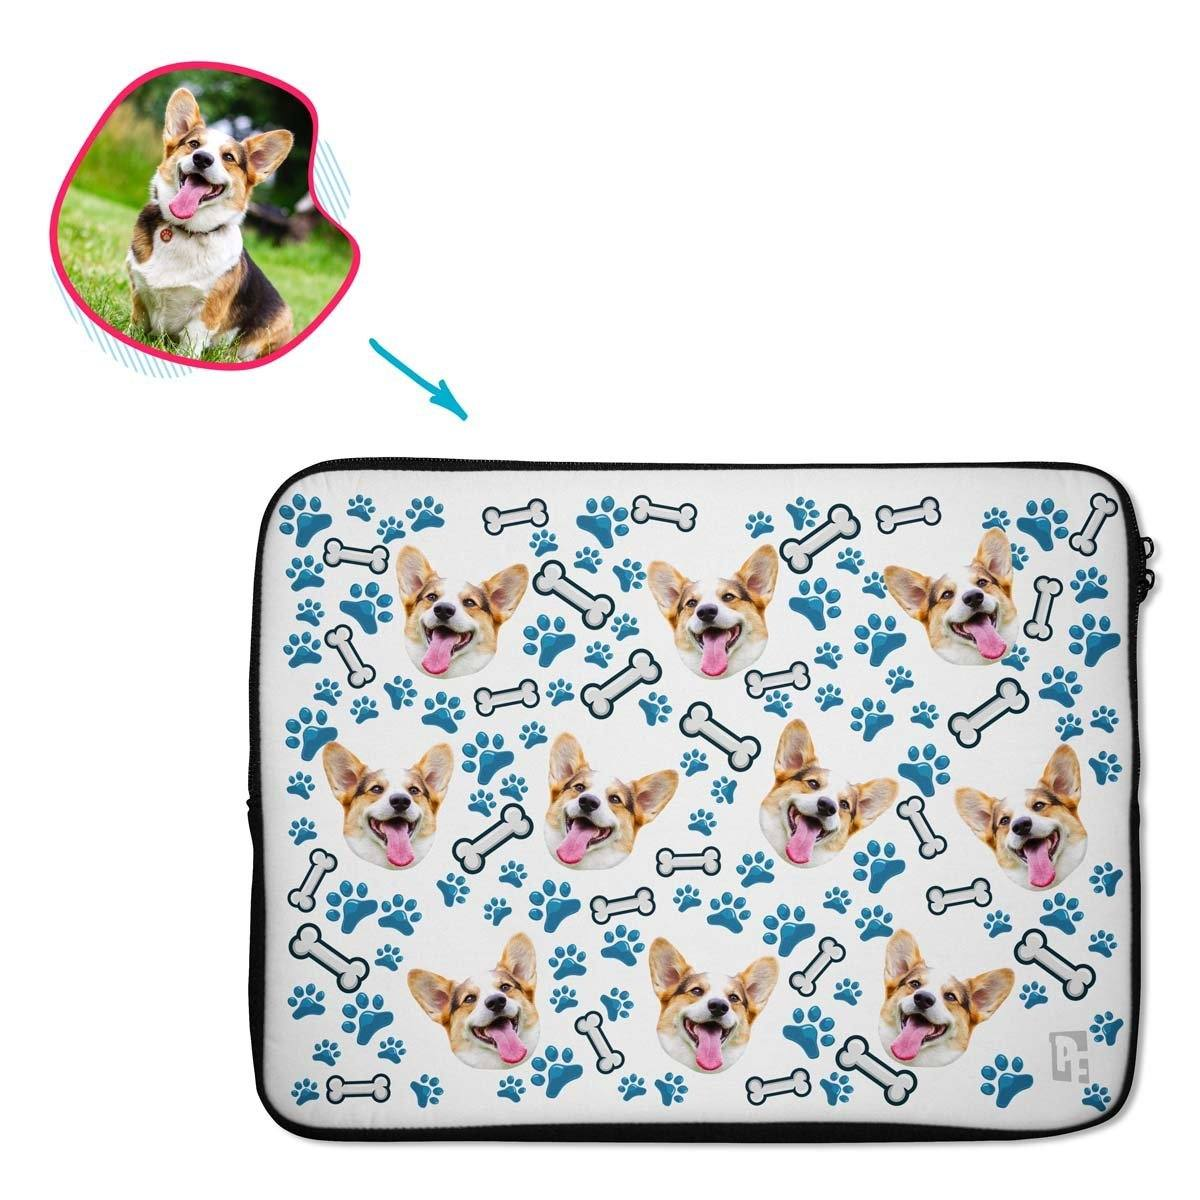 white Dog laptop sleeve personalized with photo of face printed on them